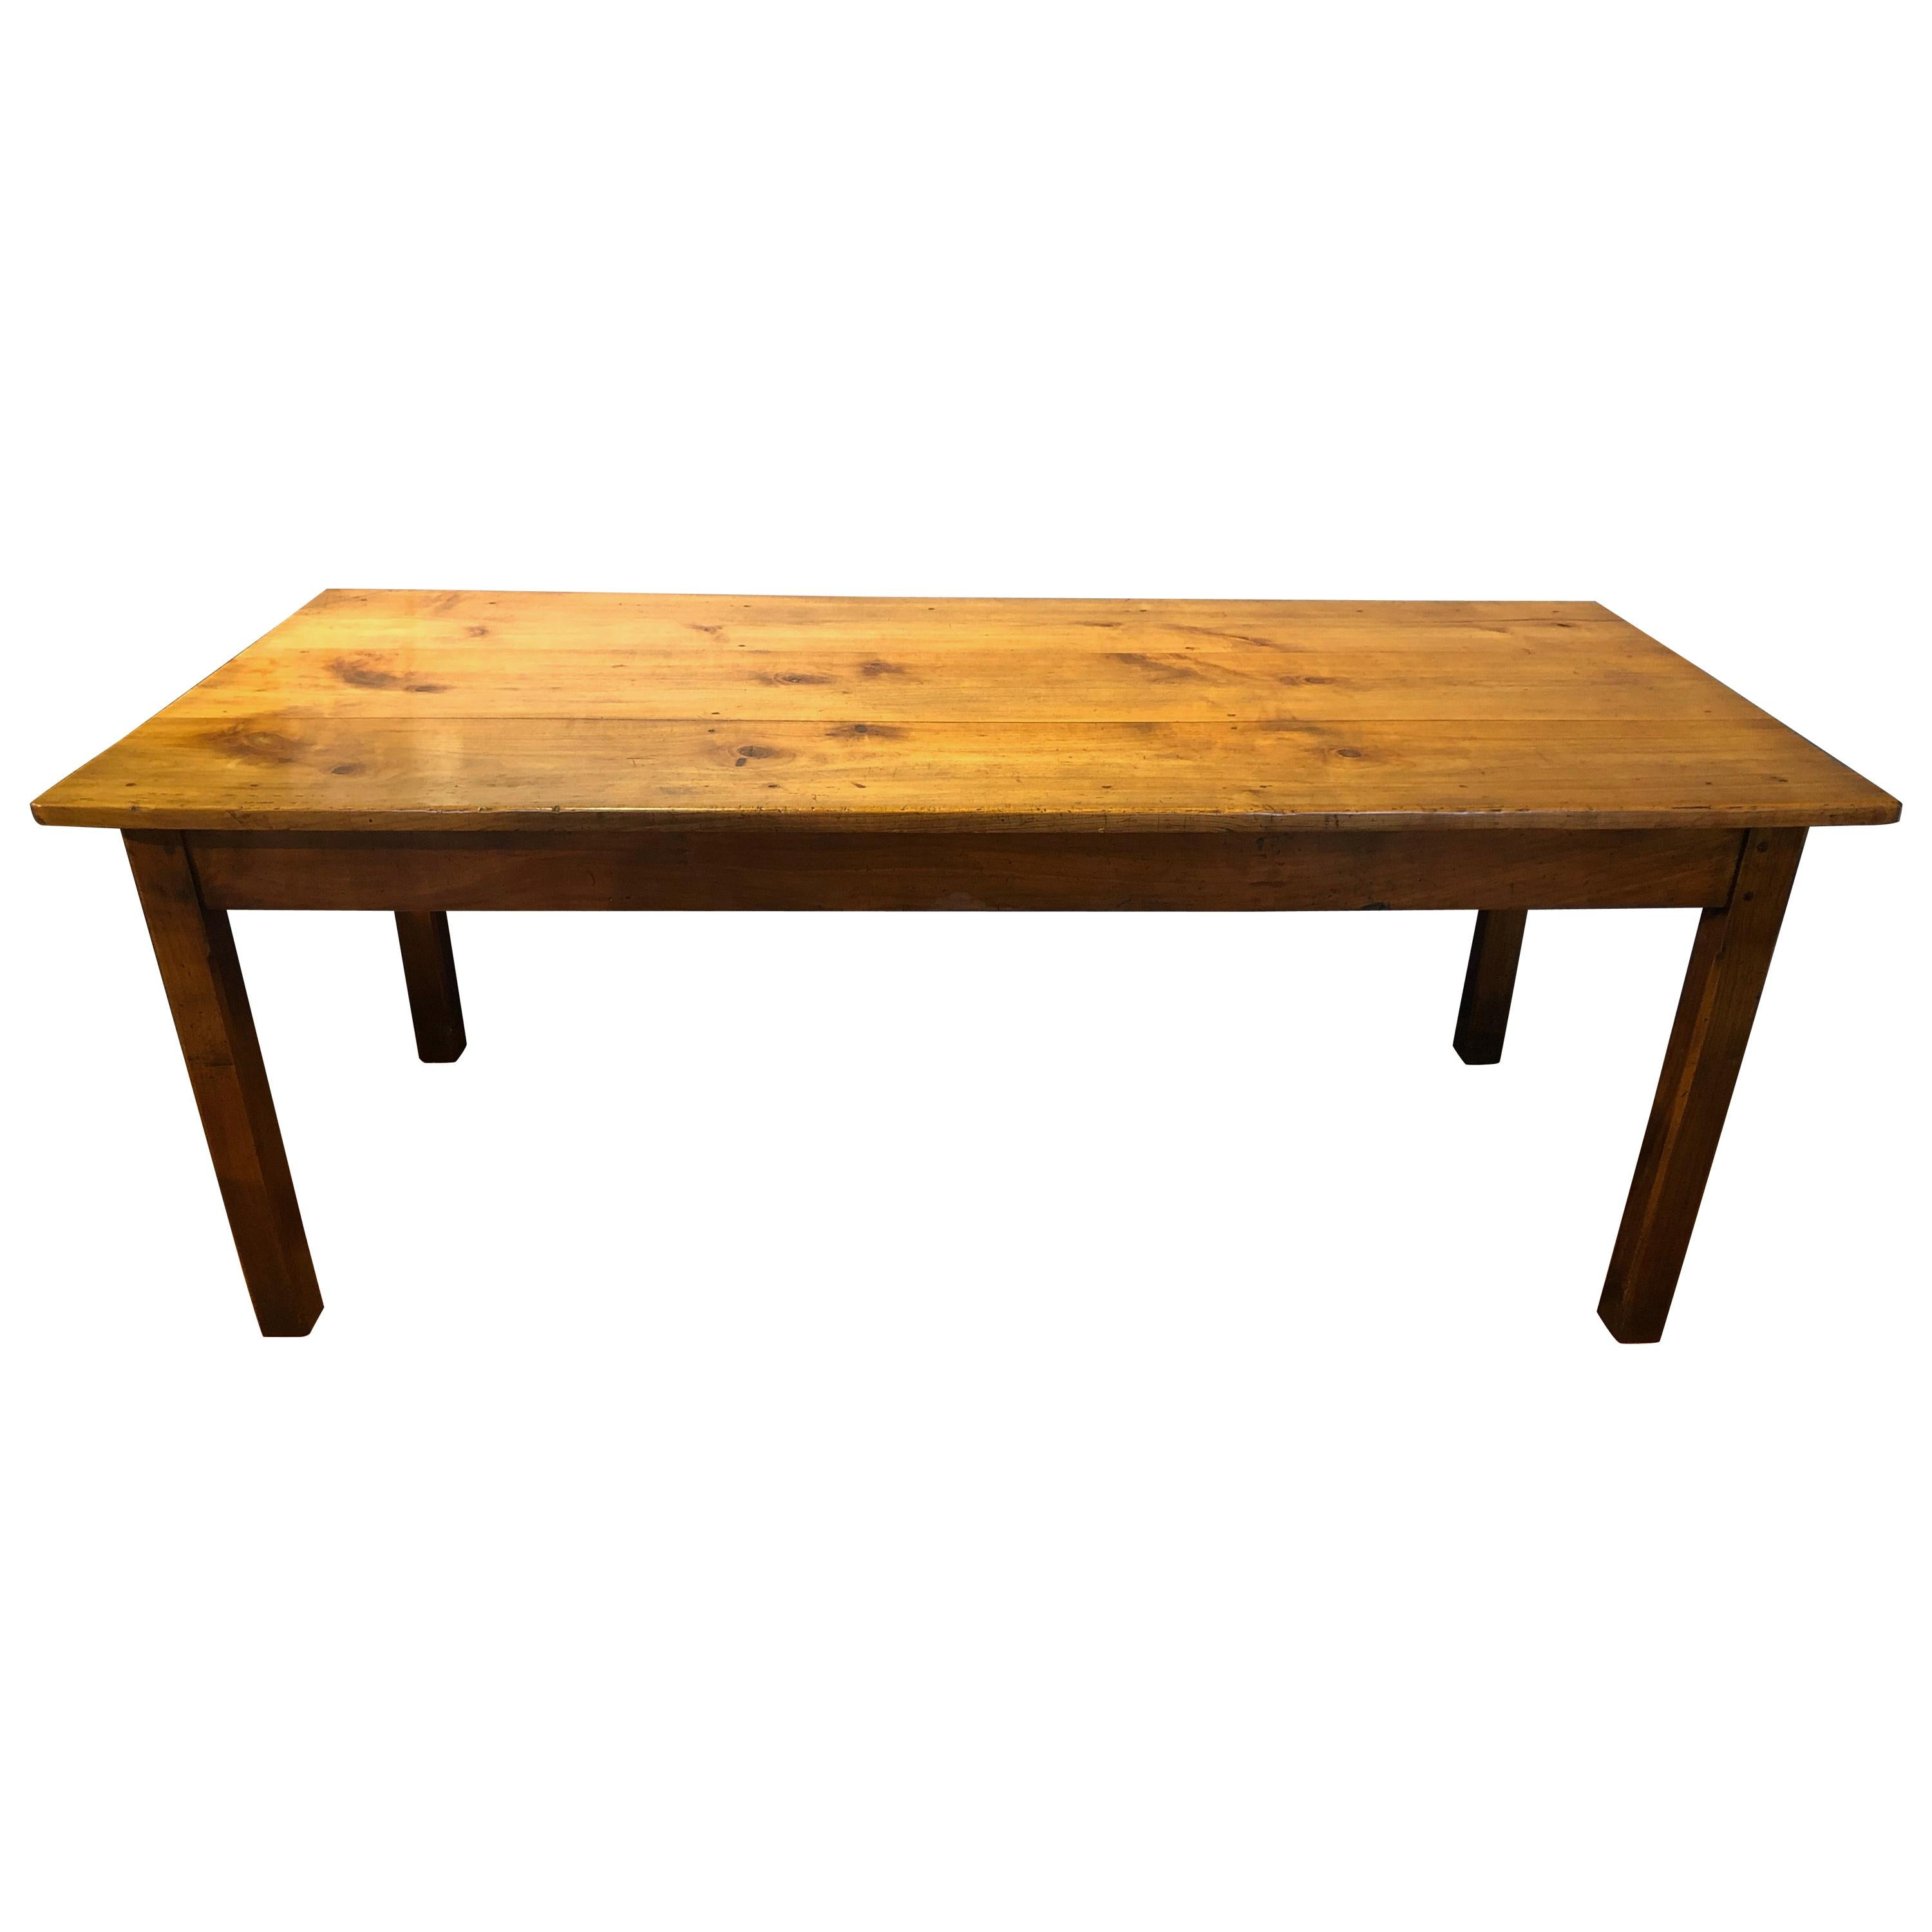 19th Century Solid Cherrywood Dining Table